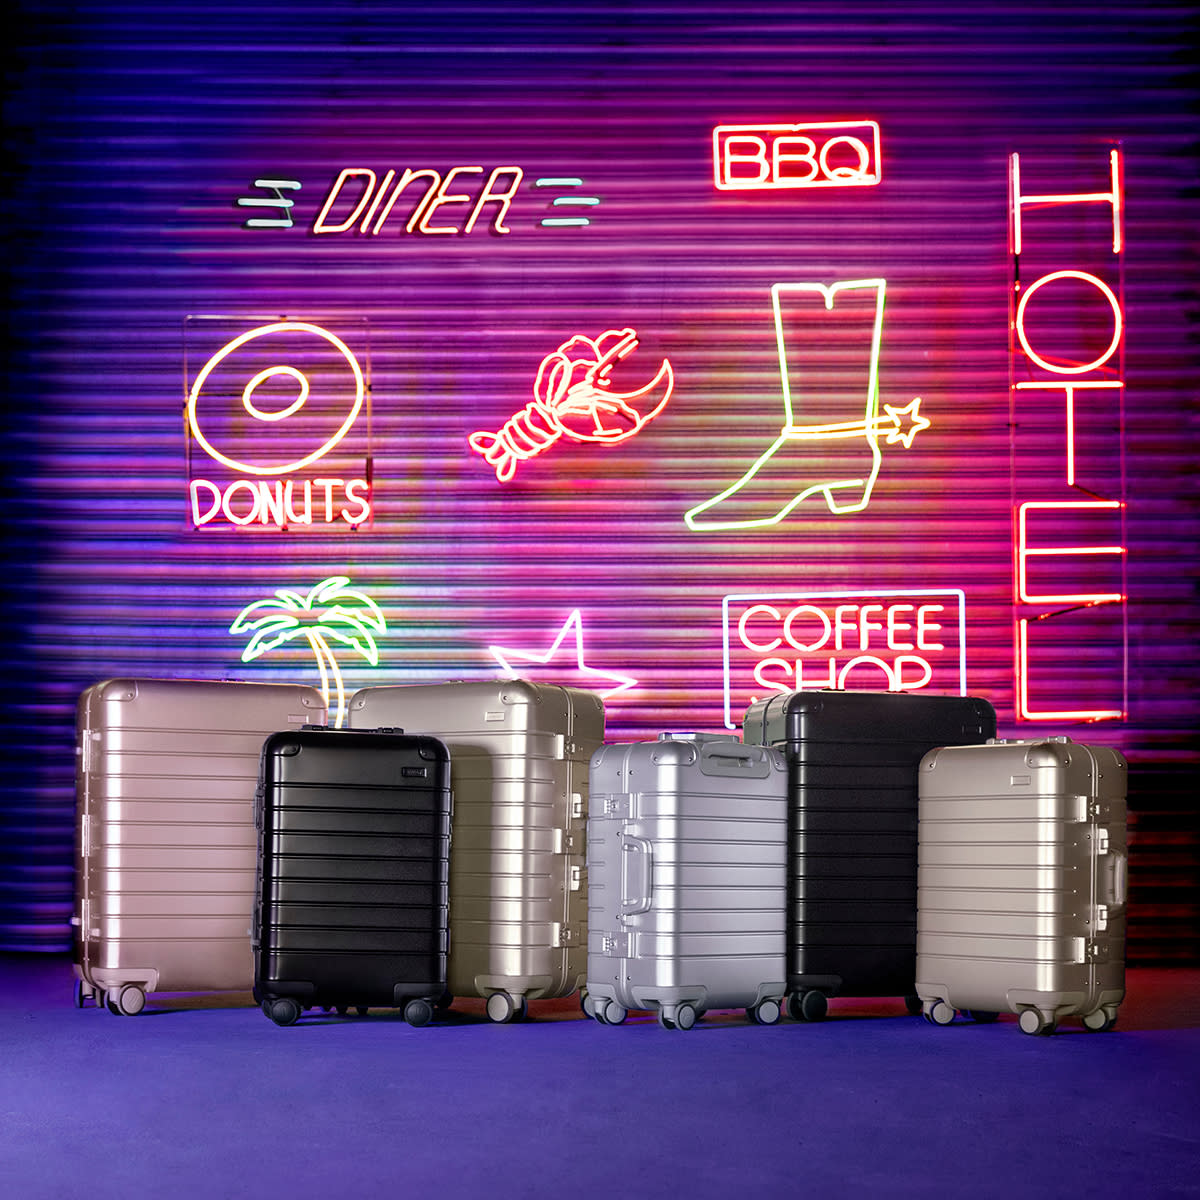 The Away Aluminum luggage collection displayed against a neon background.